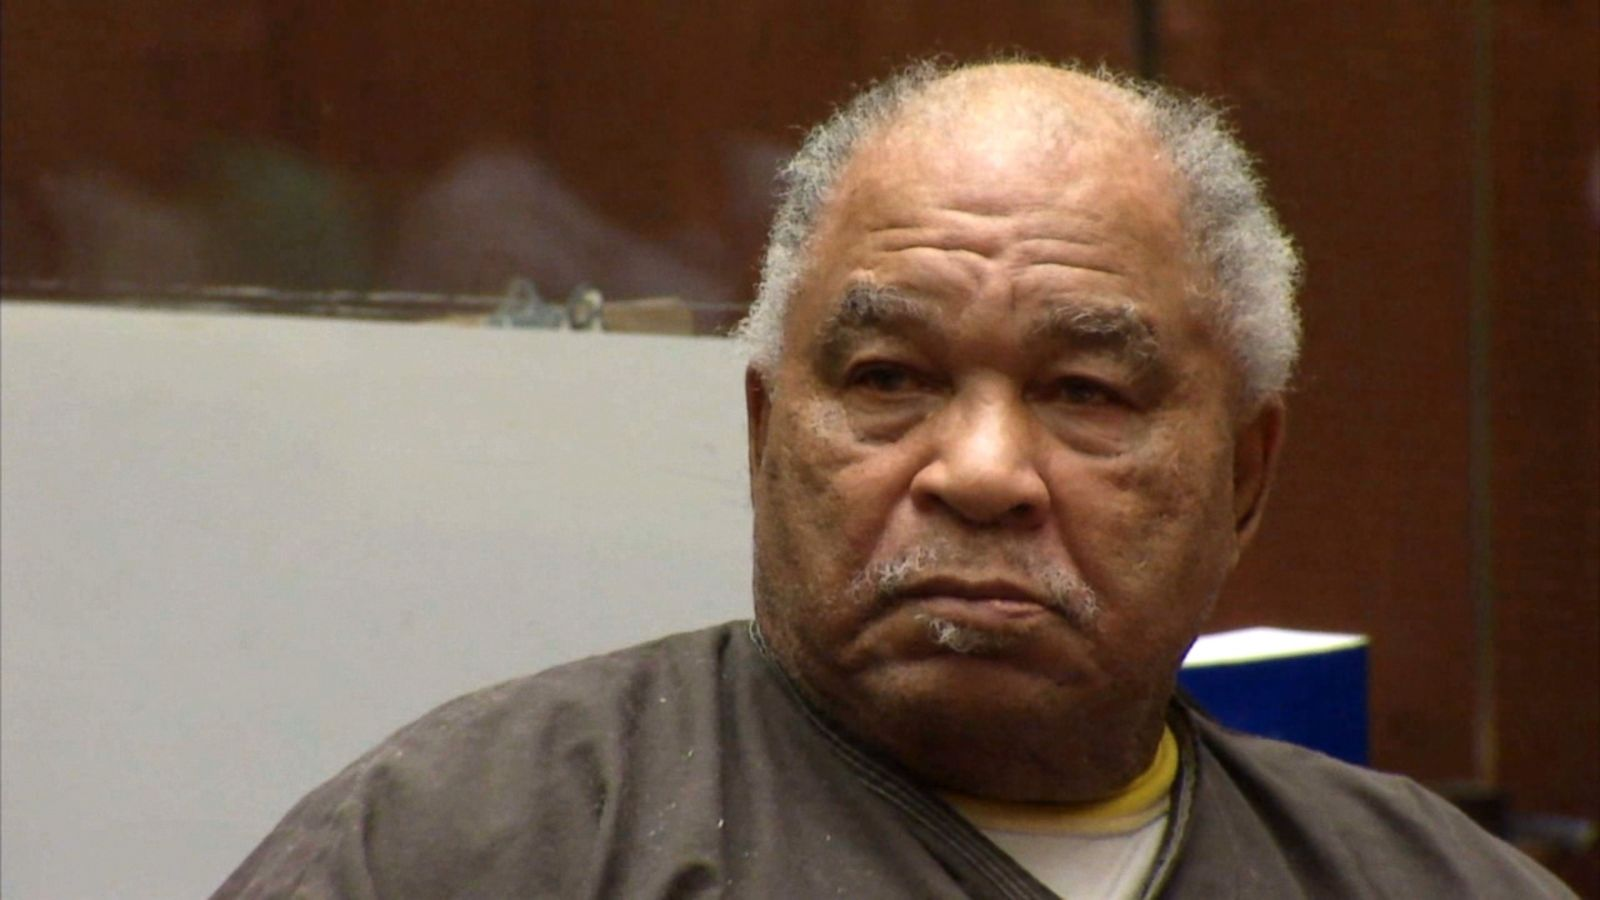 Confessed serial killer now linked to 60 deaths in 14 states: Report